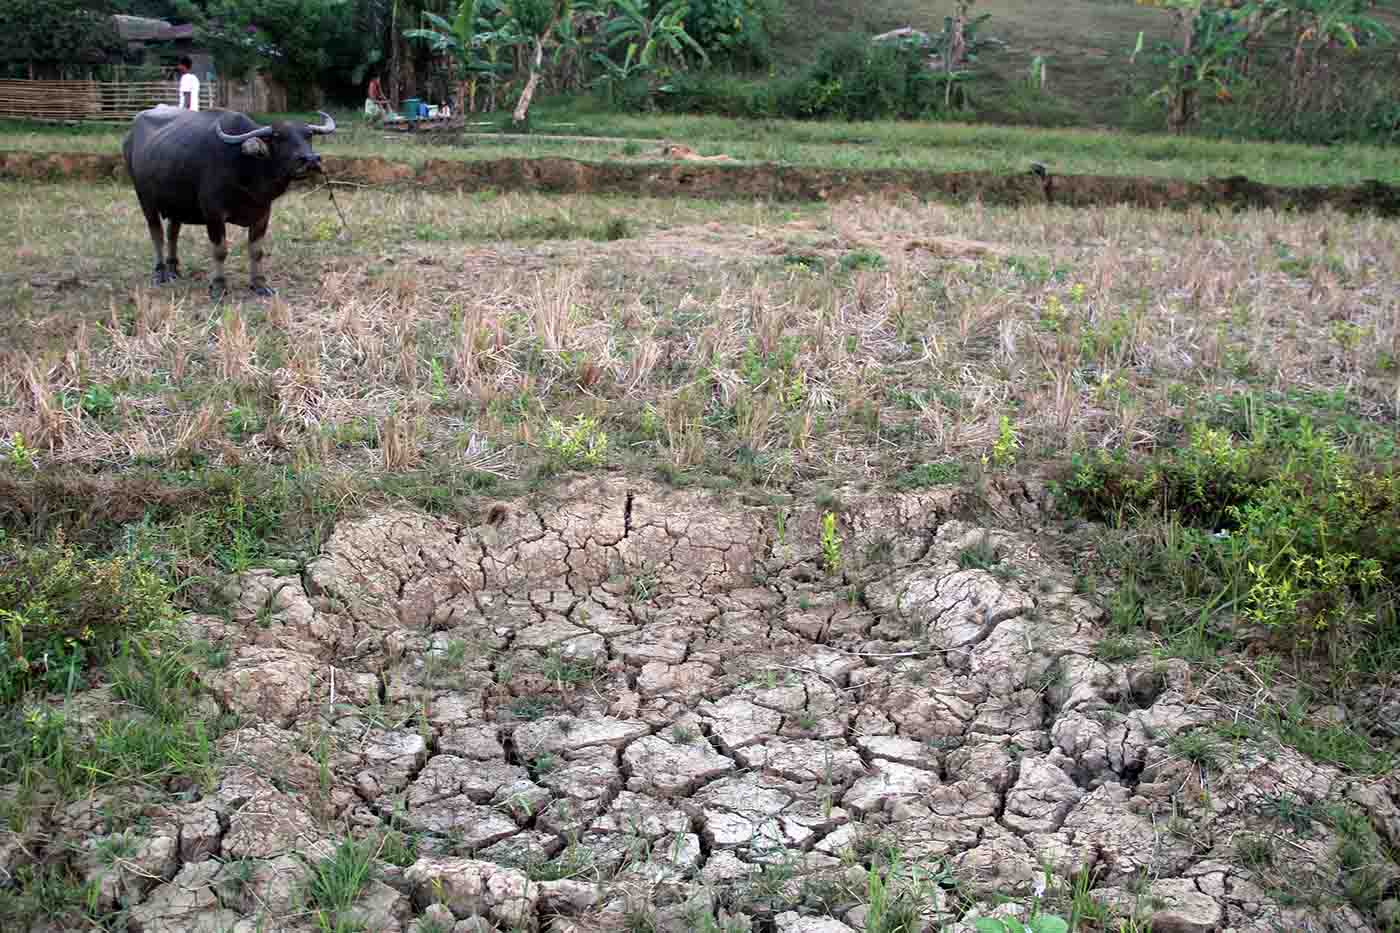 Over 1,000 hectares of riceland in Bicol barren due to drought